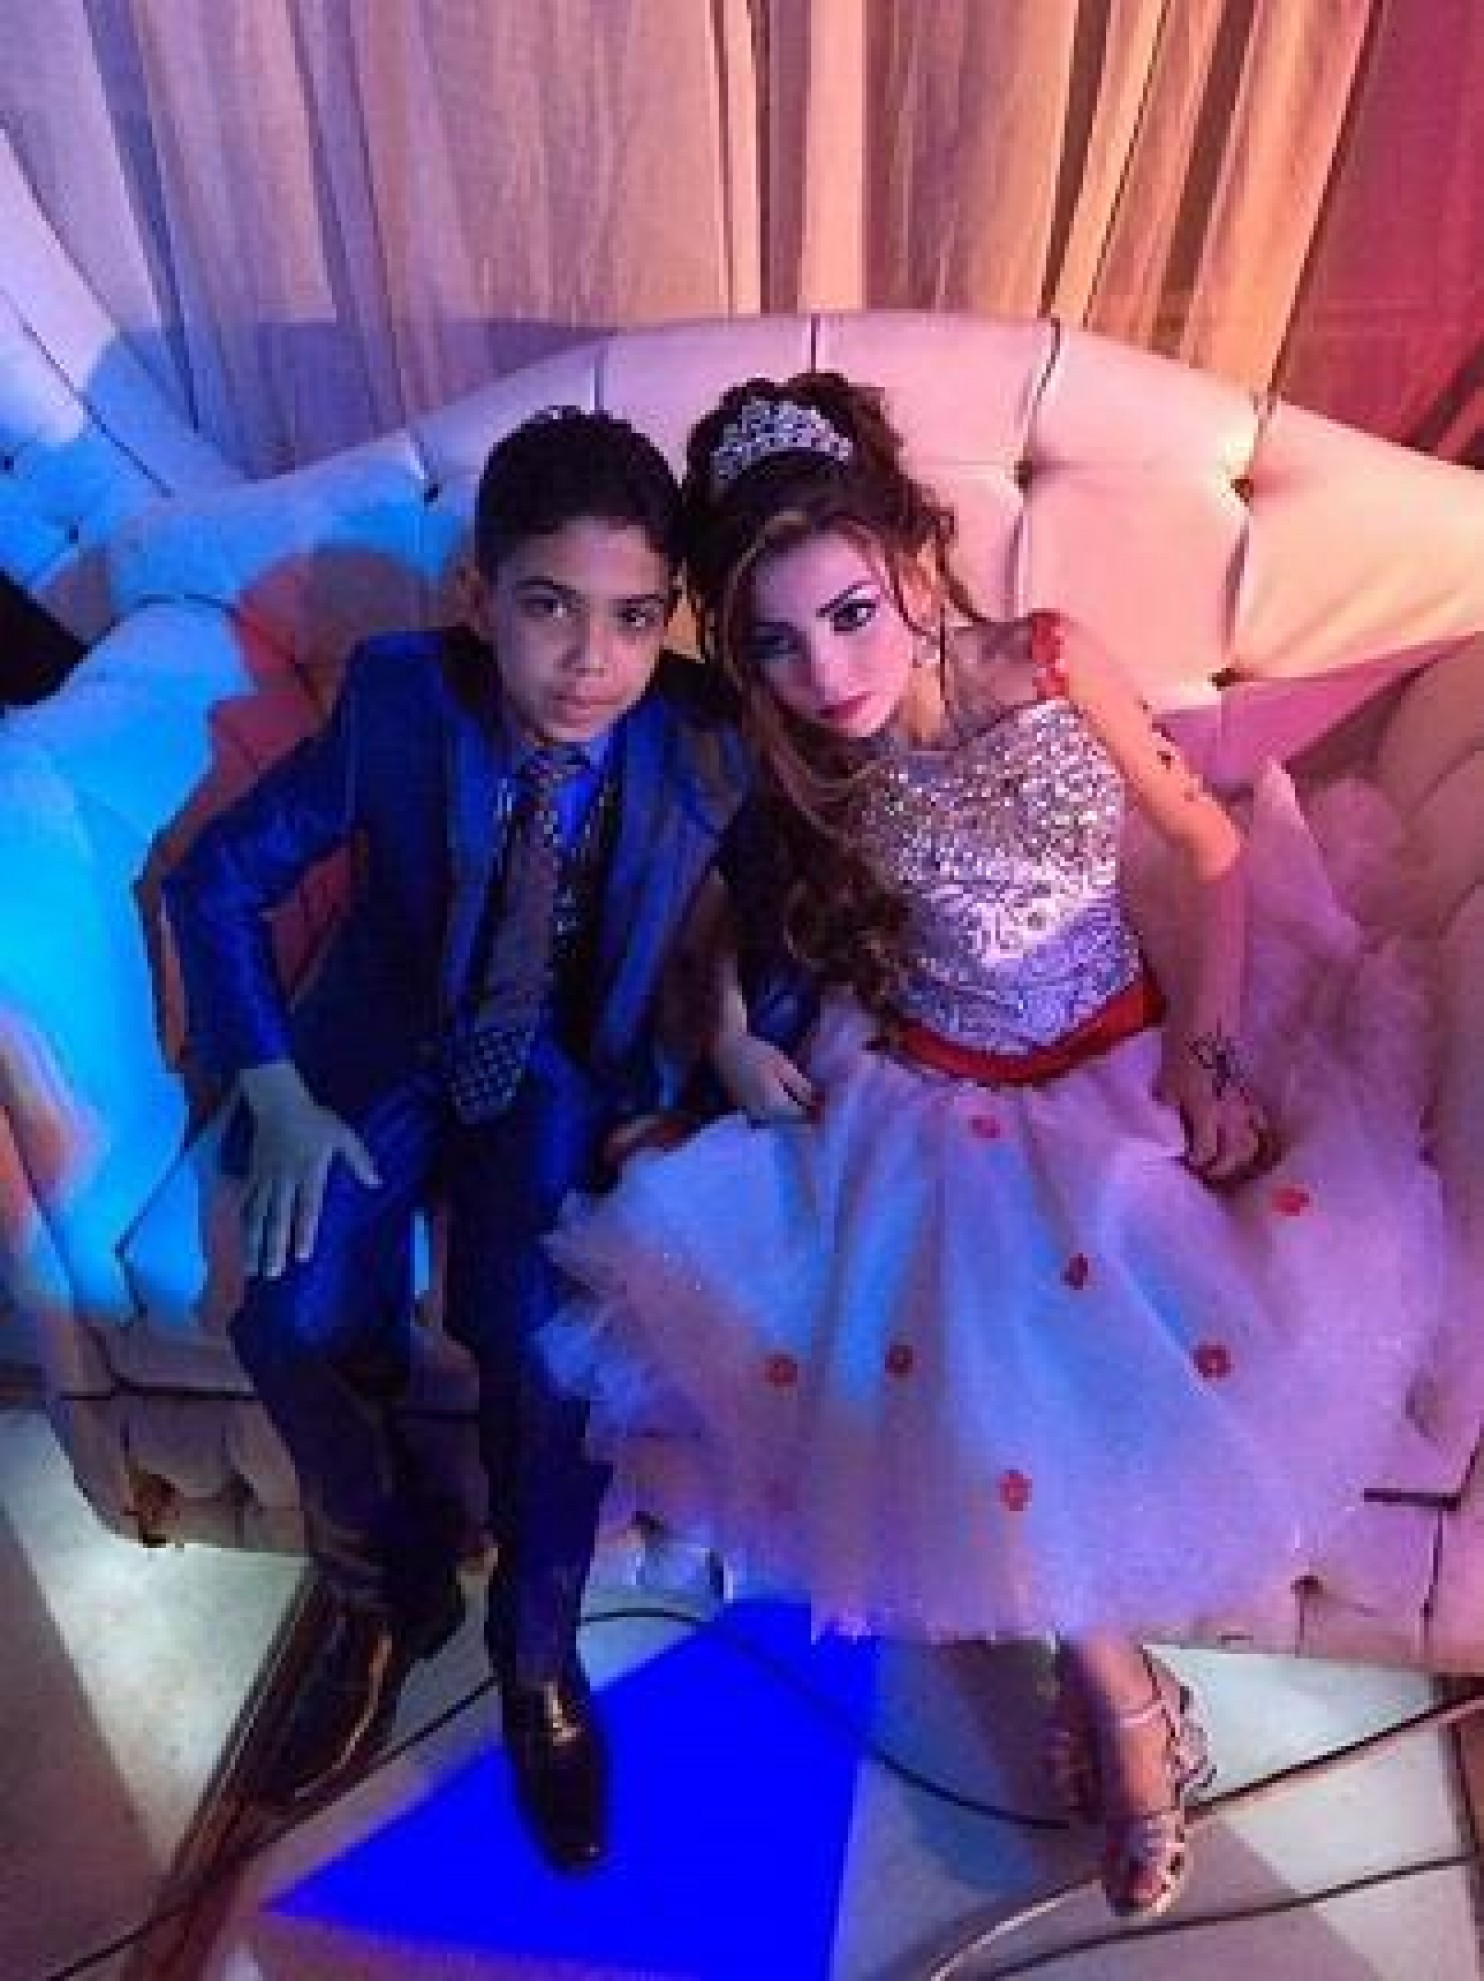 Omar and Gharam to marry in egypt